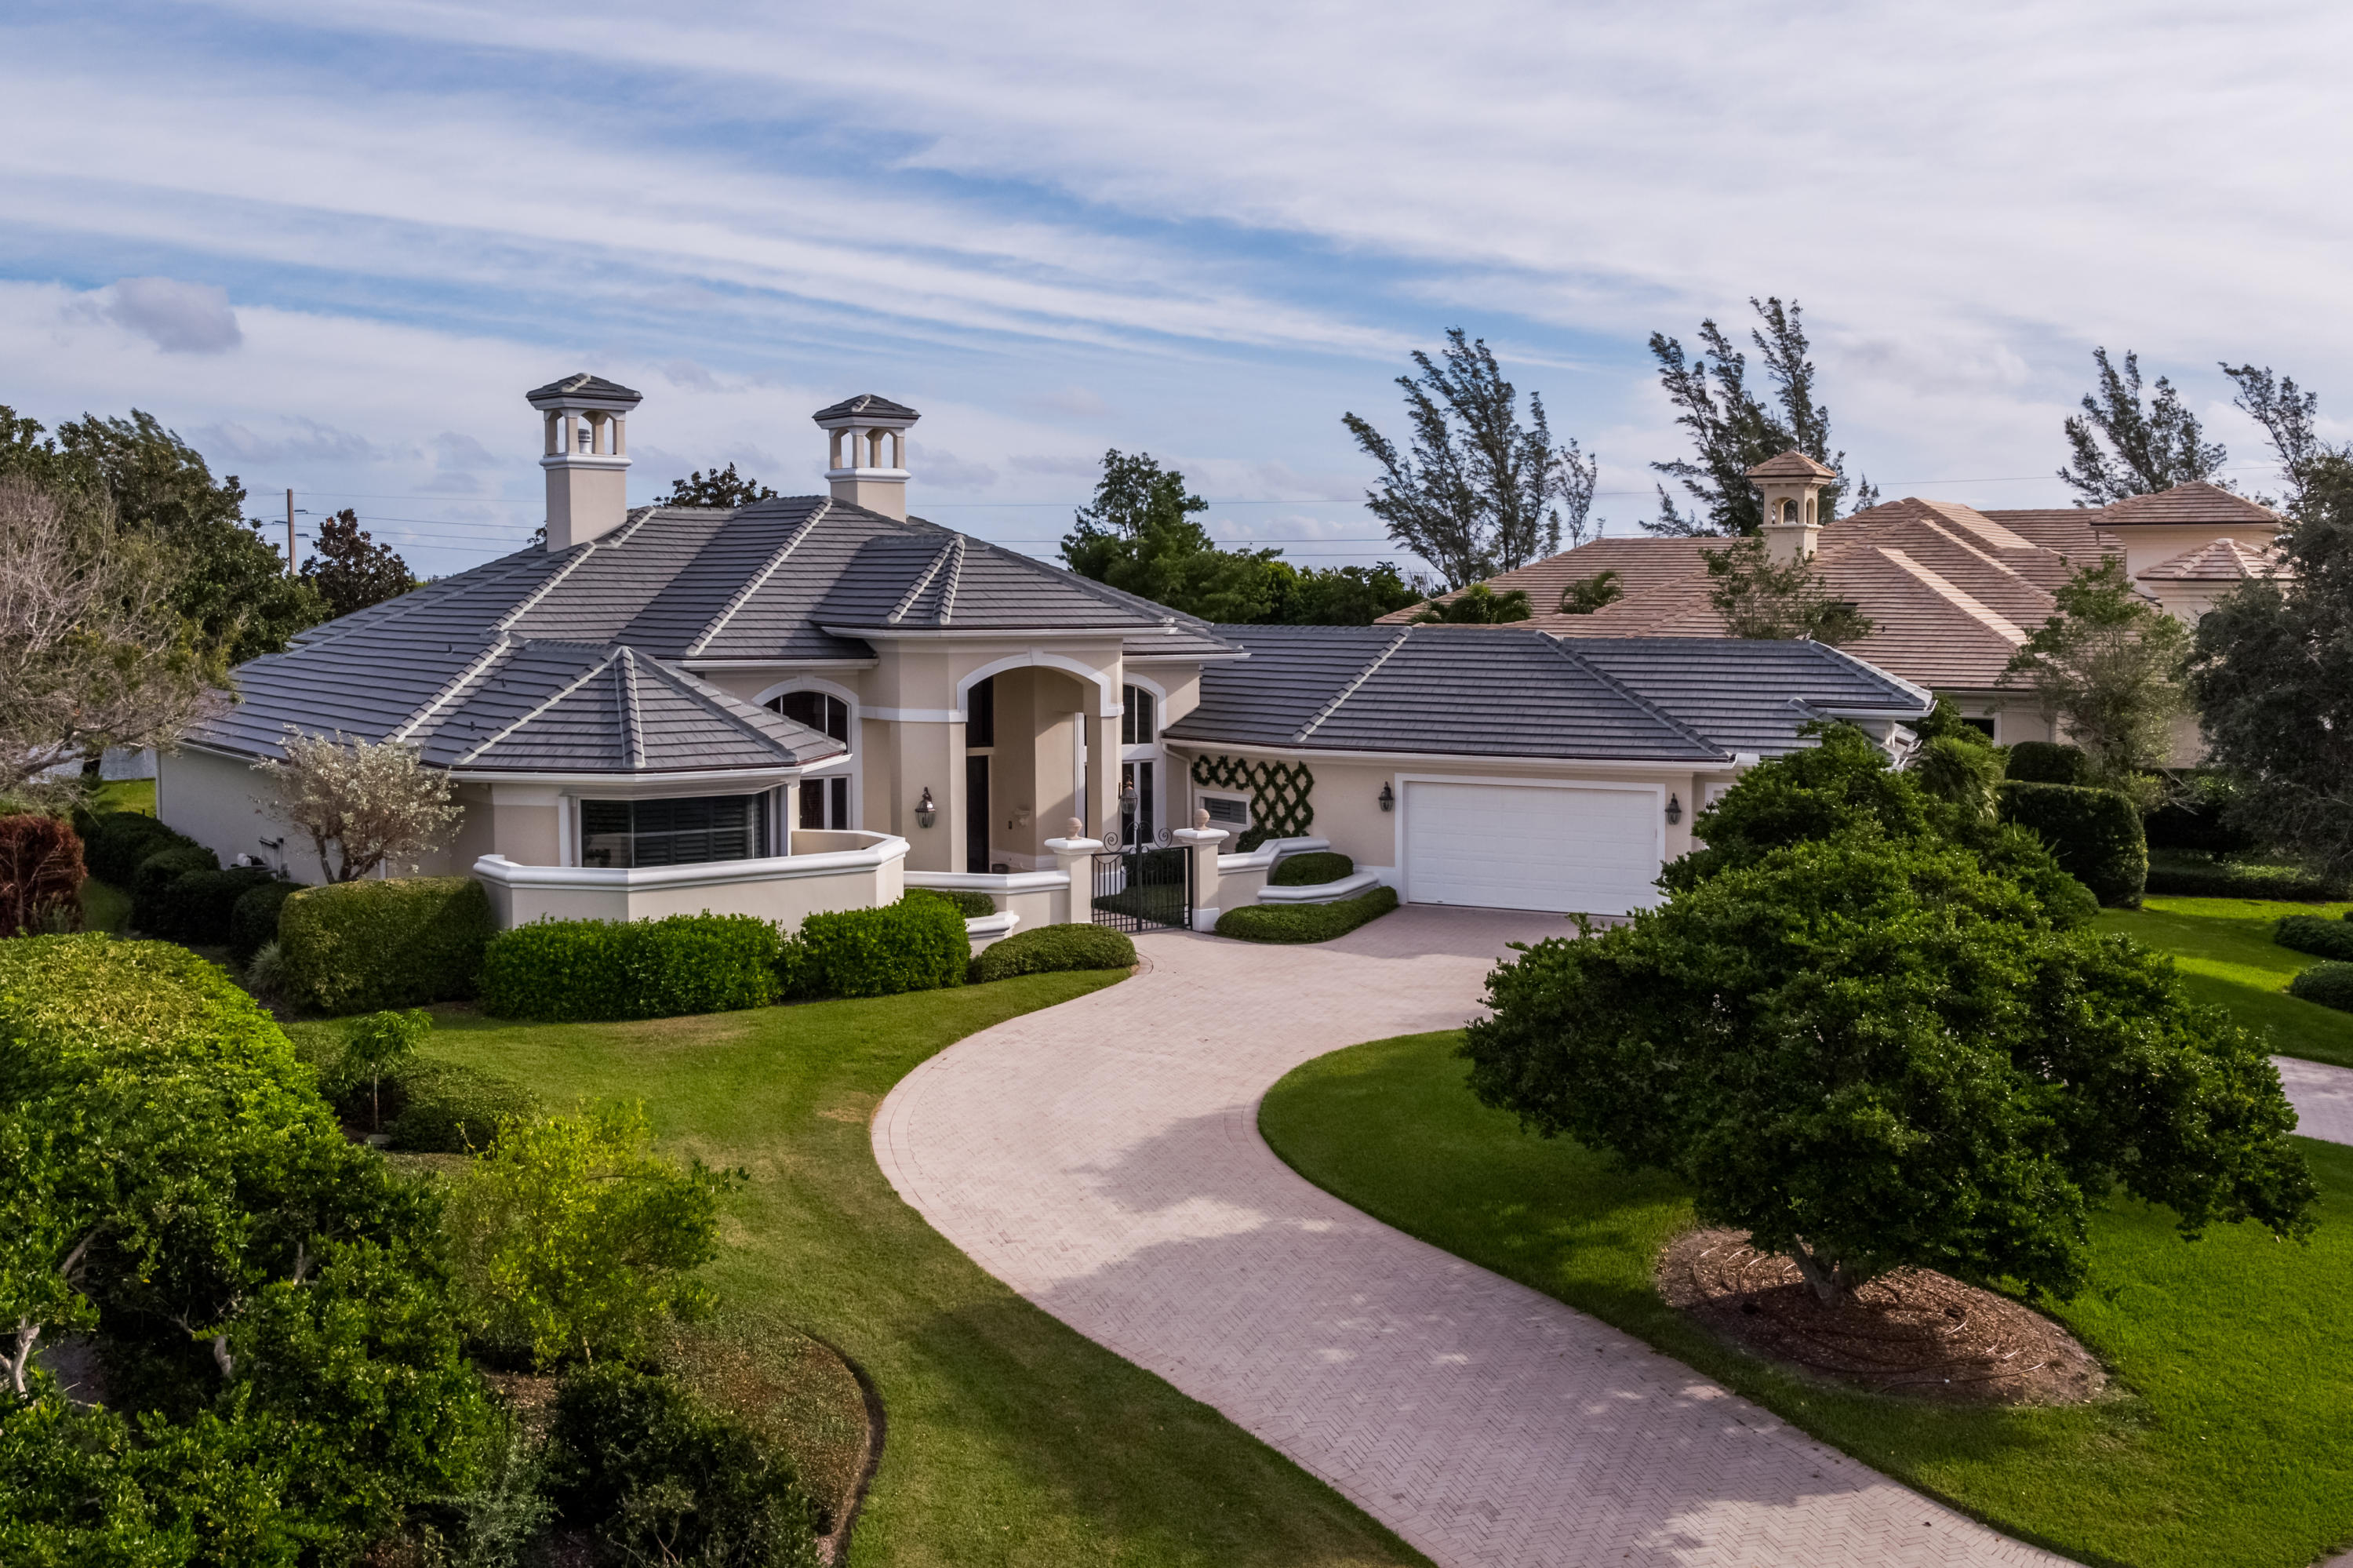 JUPITER HILLS TEQUESTA REAL ESTATE